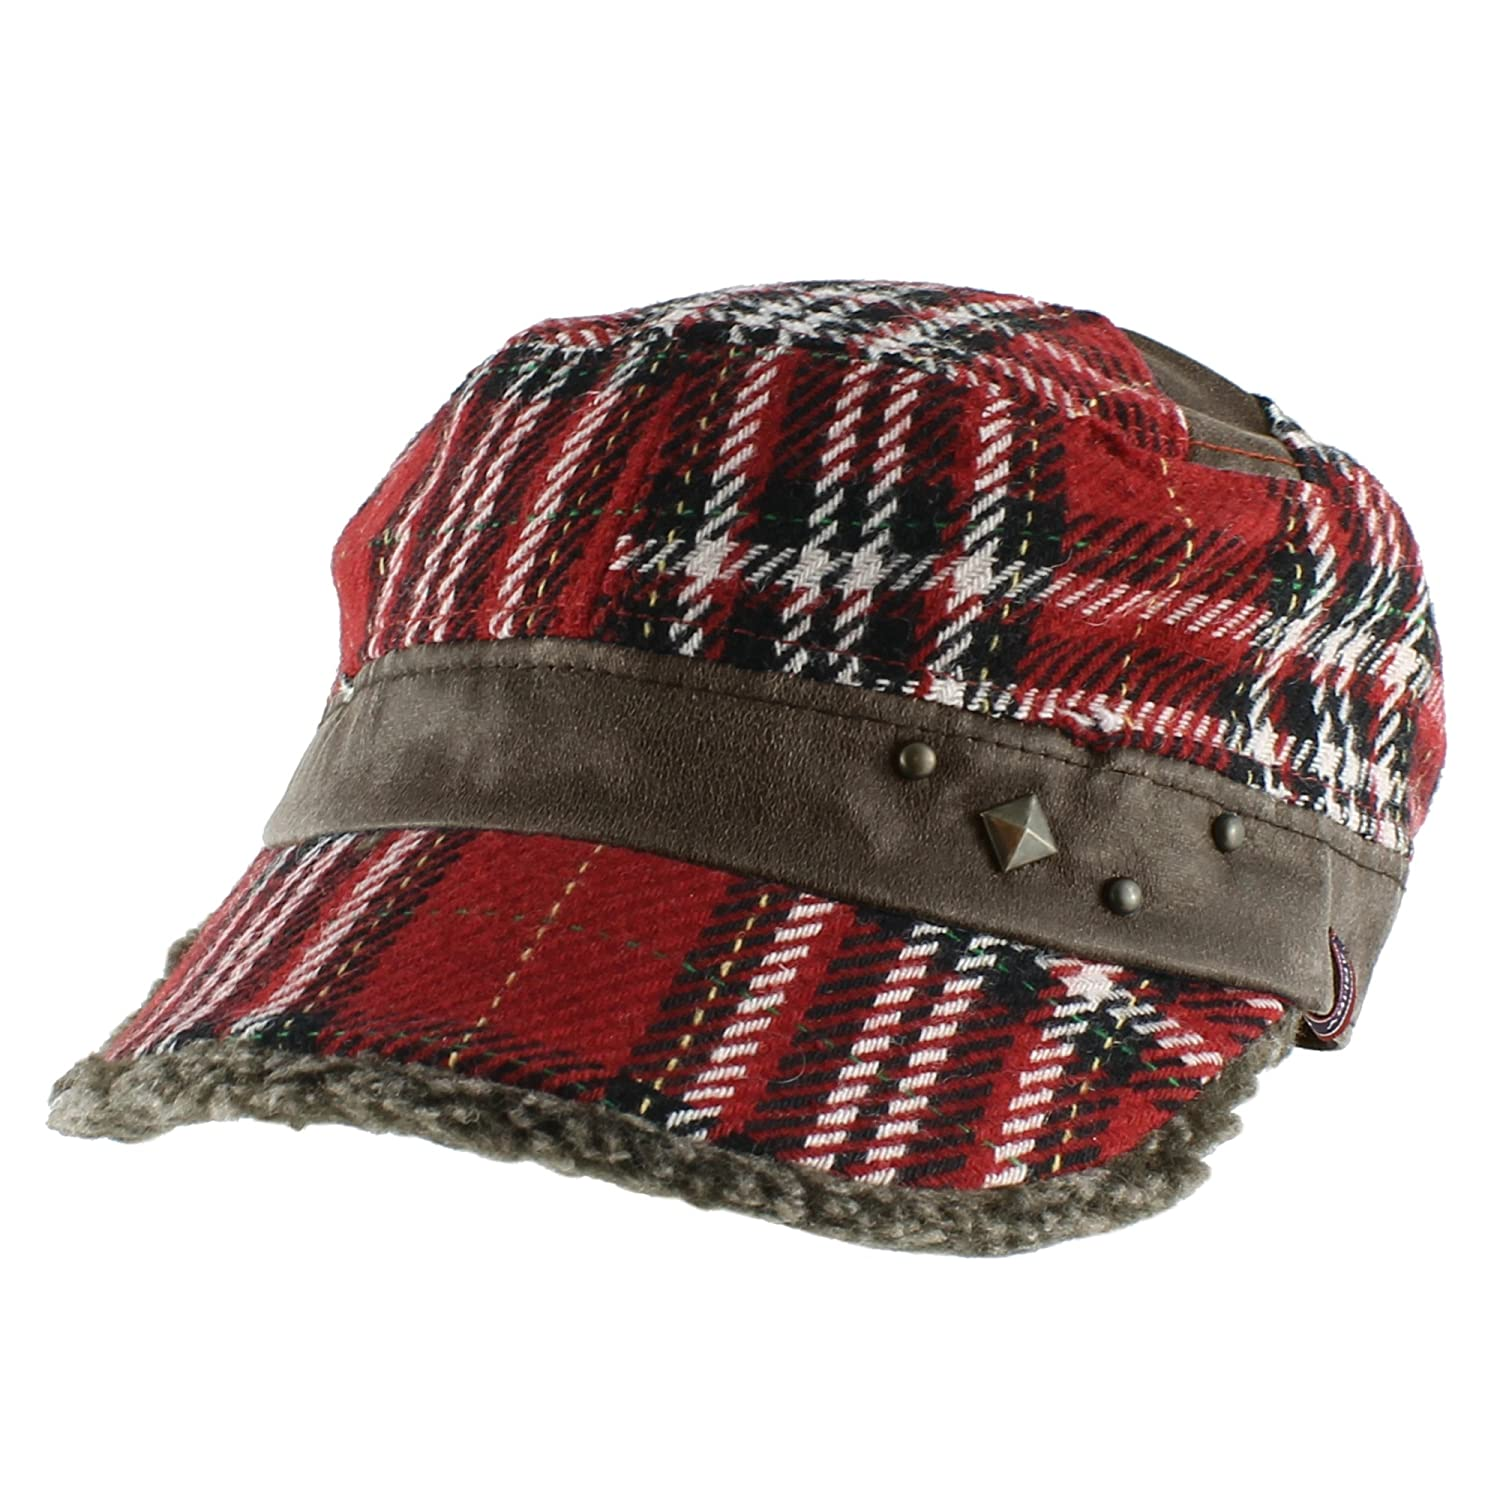 c7ec7c6de Morehats Wool Plaid Baseball Cap with Sherpa Lined Studded Bill Warm Winter  Hat - Black at Amazon Men's Clothing store: